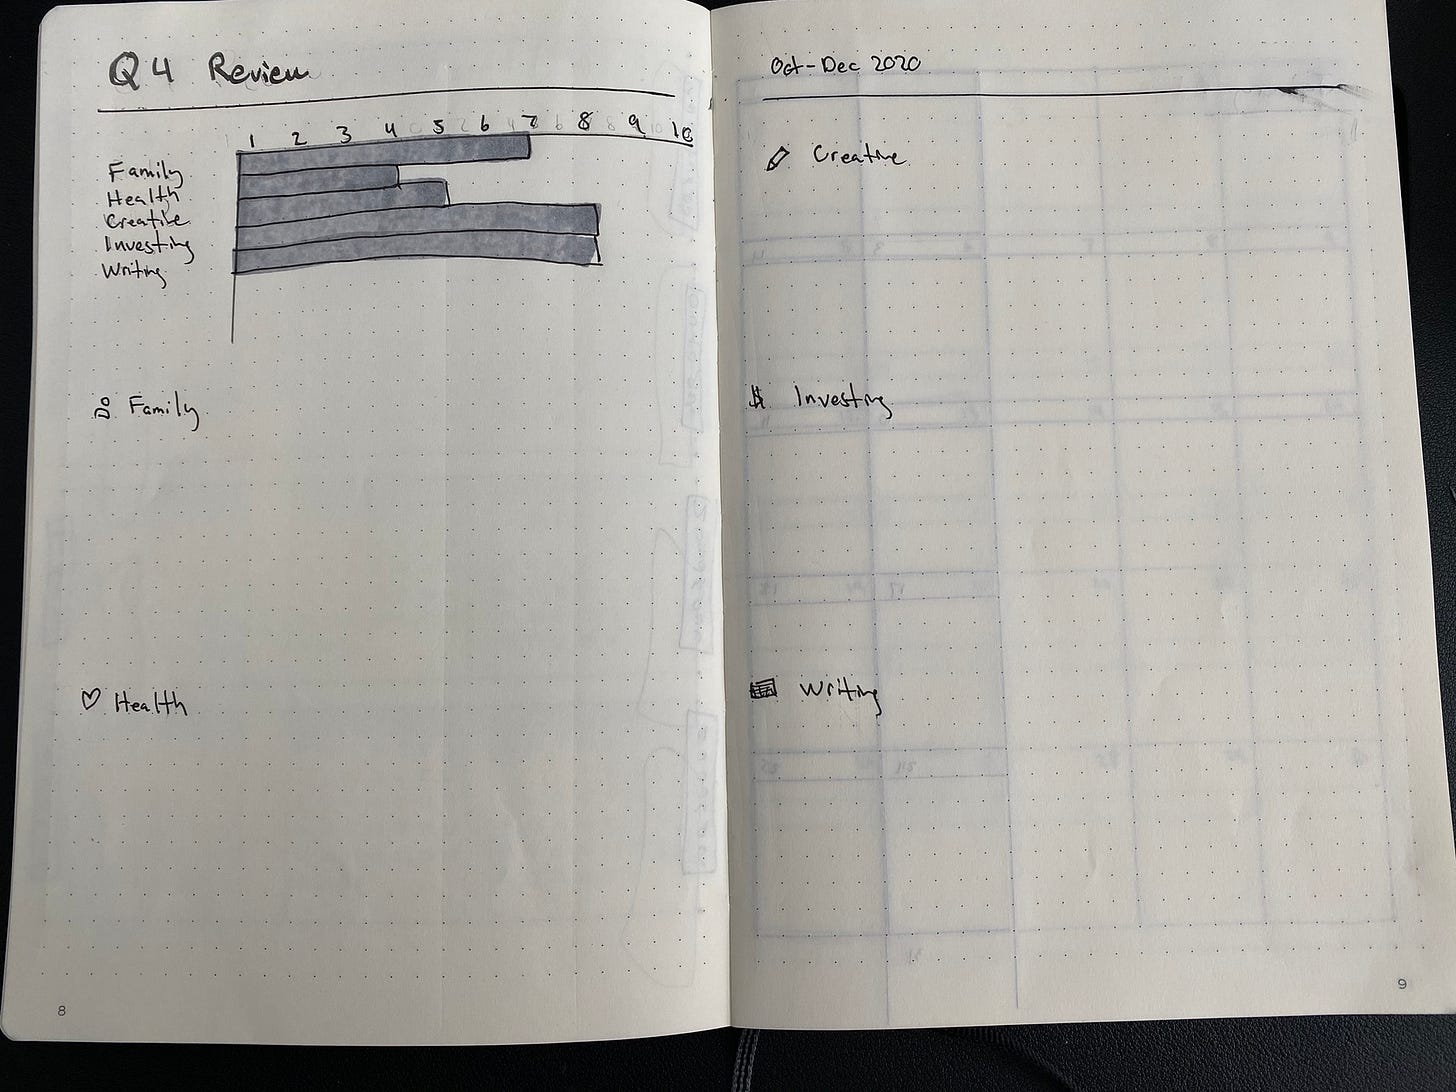 Pages that show a reflection on a quarterly review.